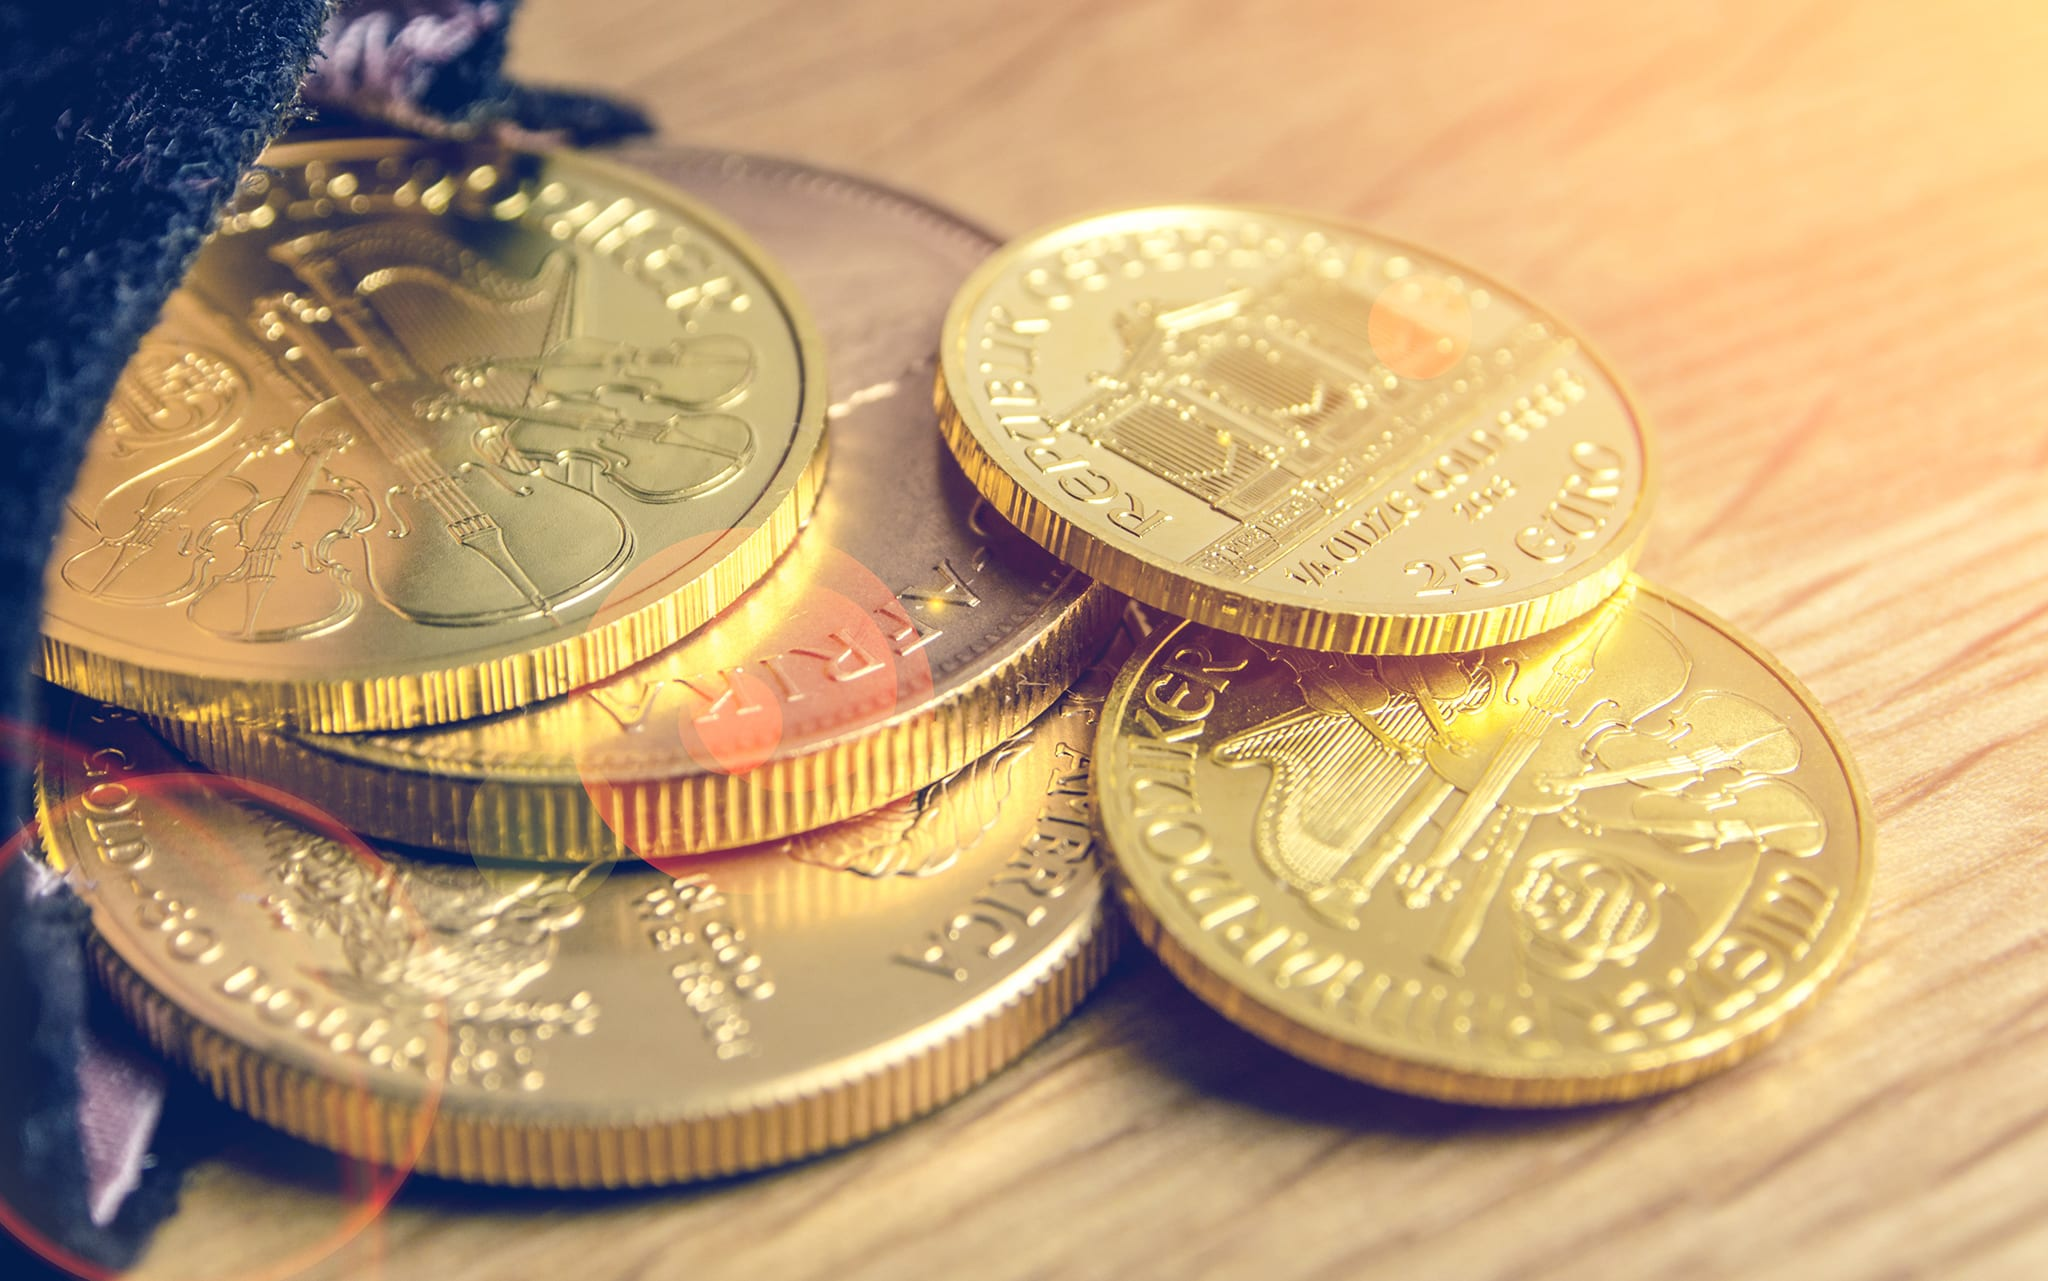 gold coins are a valuable asset to collect and ramzs has a great selection to choose from